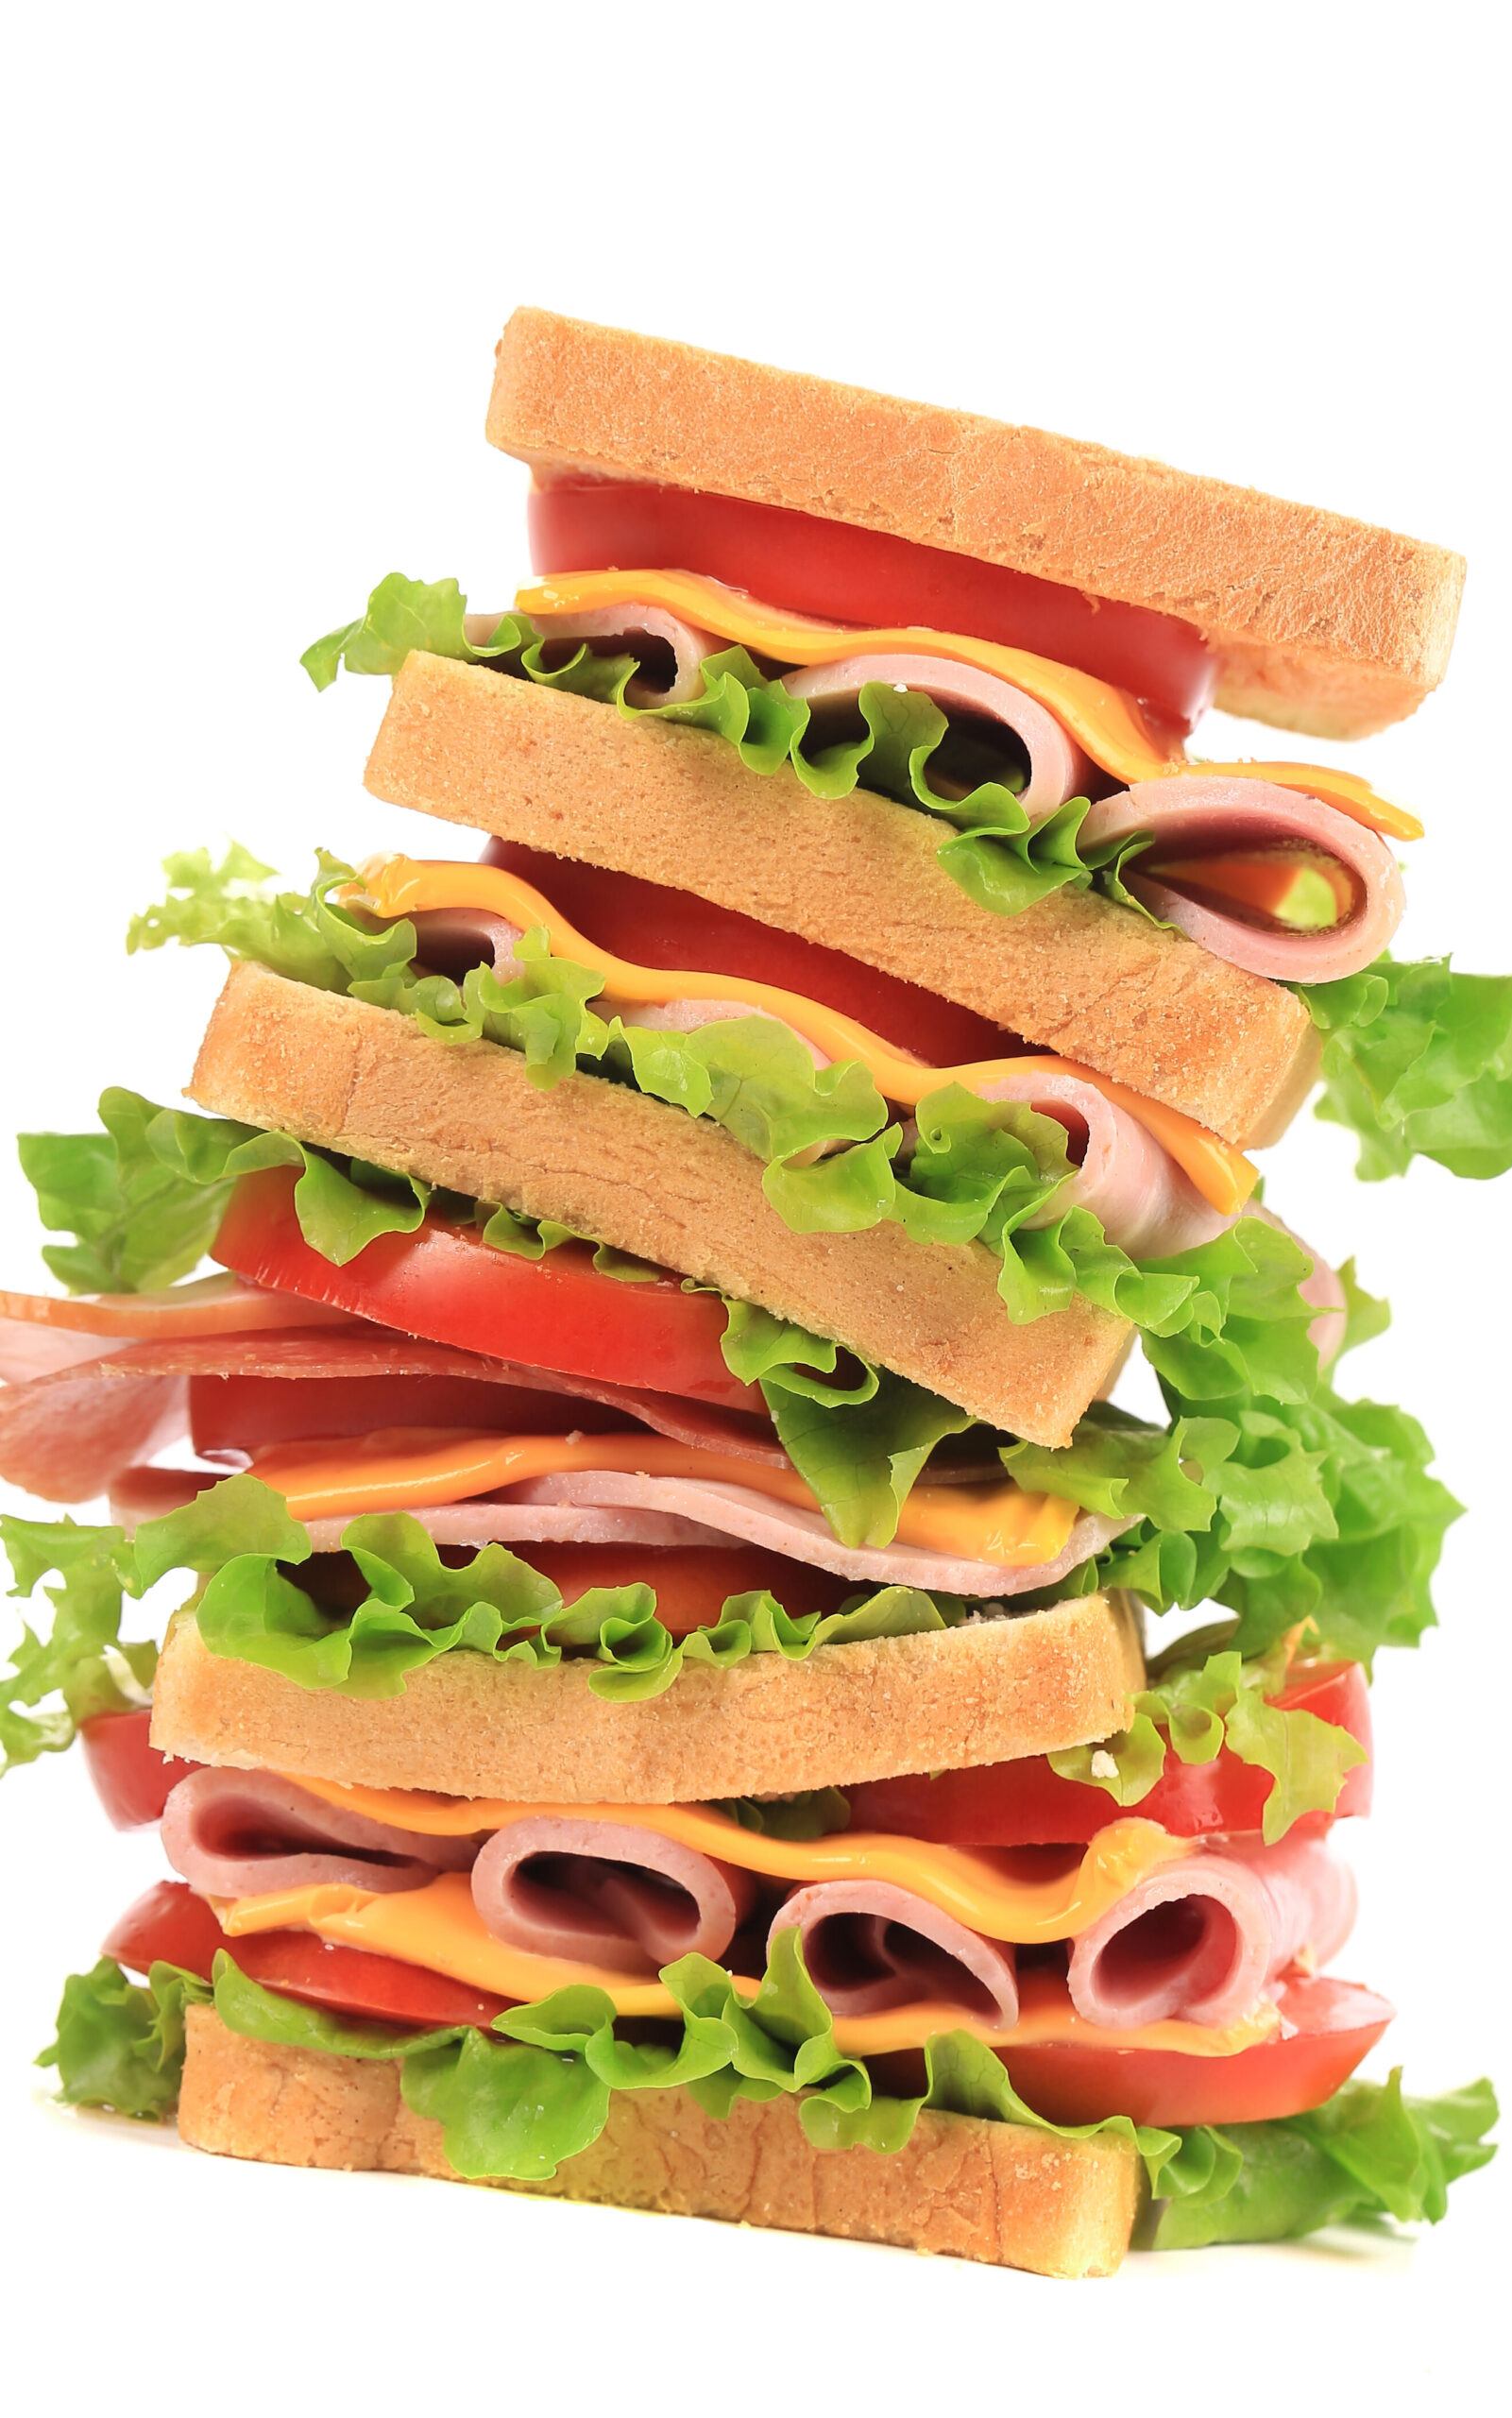 A very tall sandwich! Six slices of bread with tomato, cheese, meat, and lettuce between each pair.